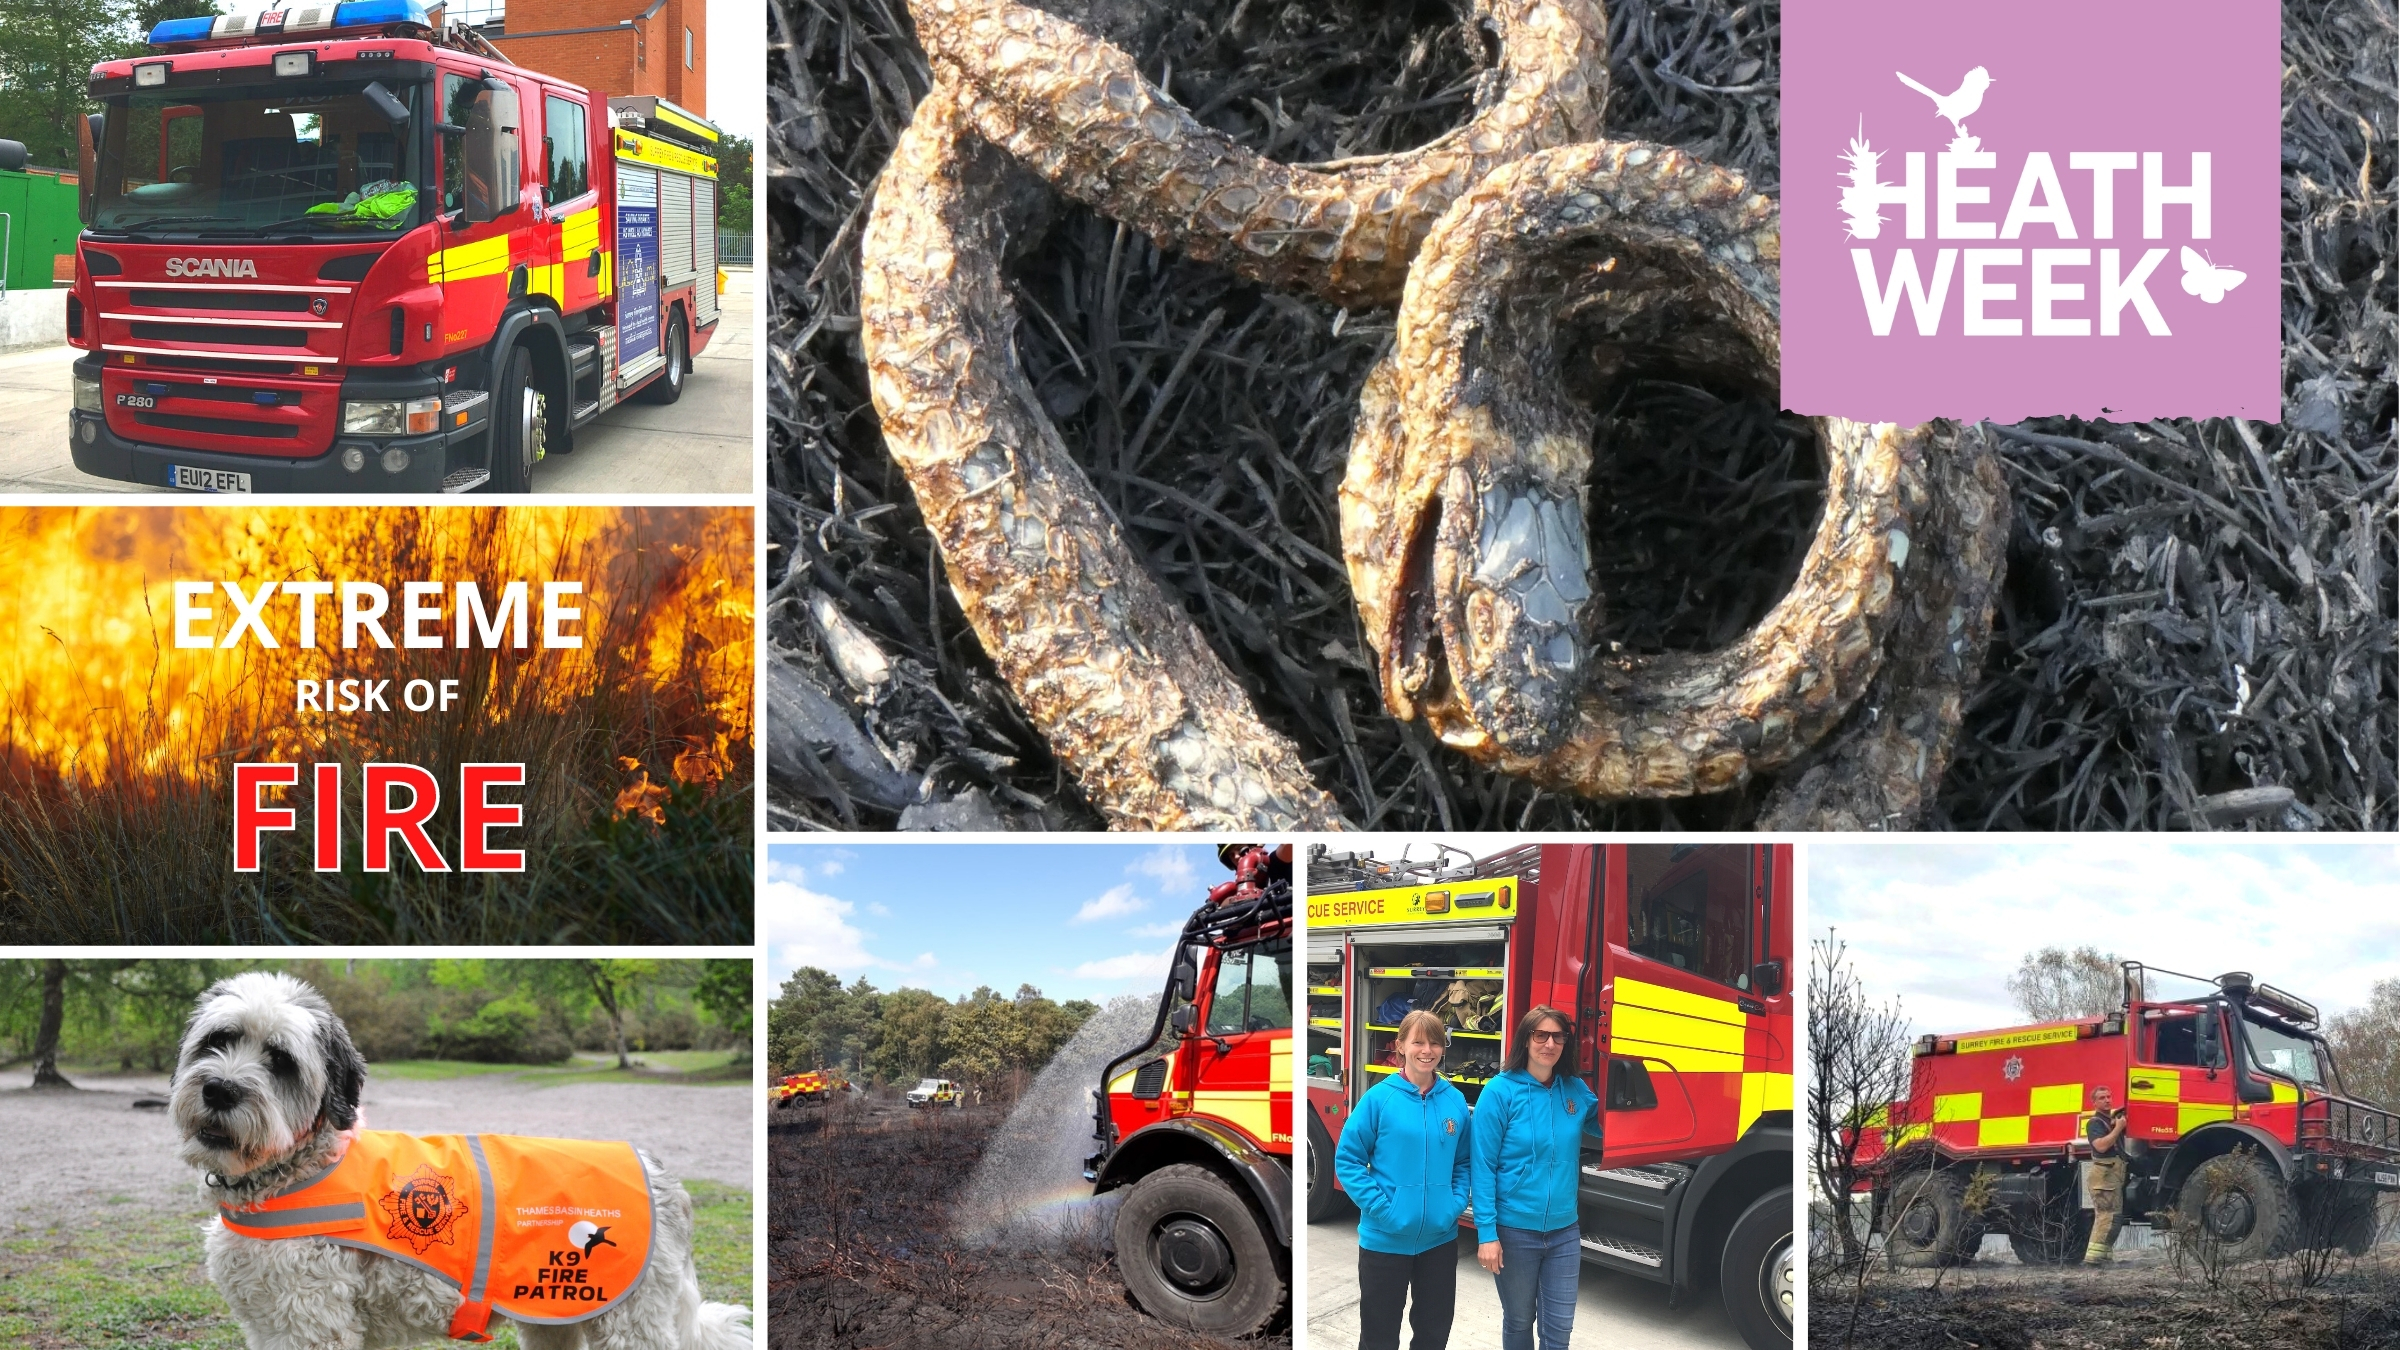 Heath Week montage showing fire engines and some of the consequences of fire - burnt reptile and burnt heath